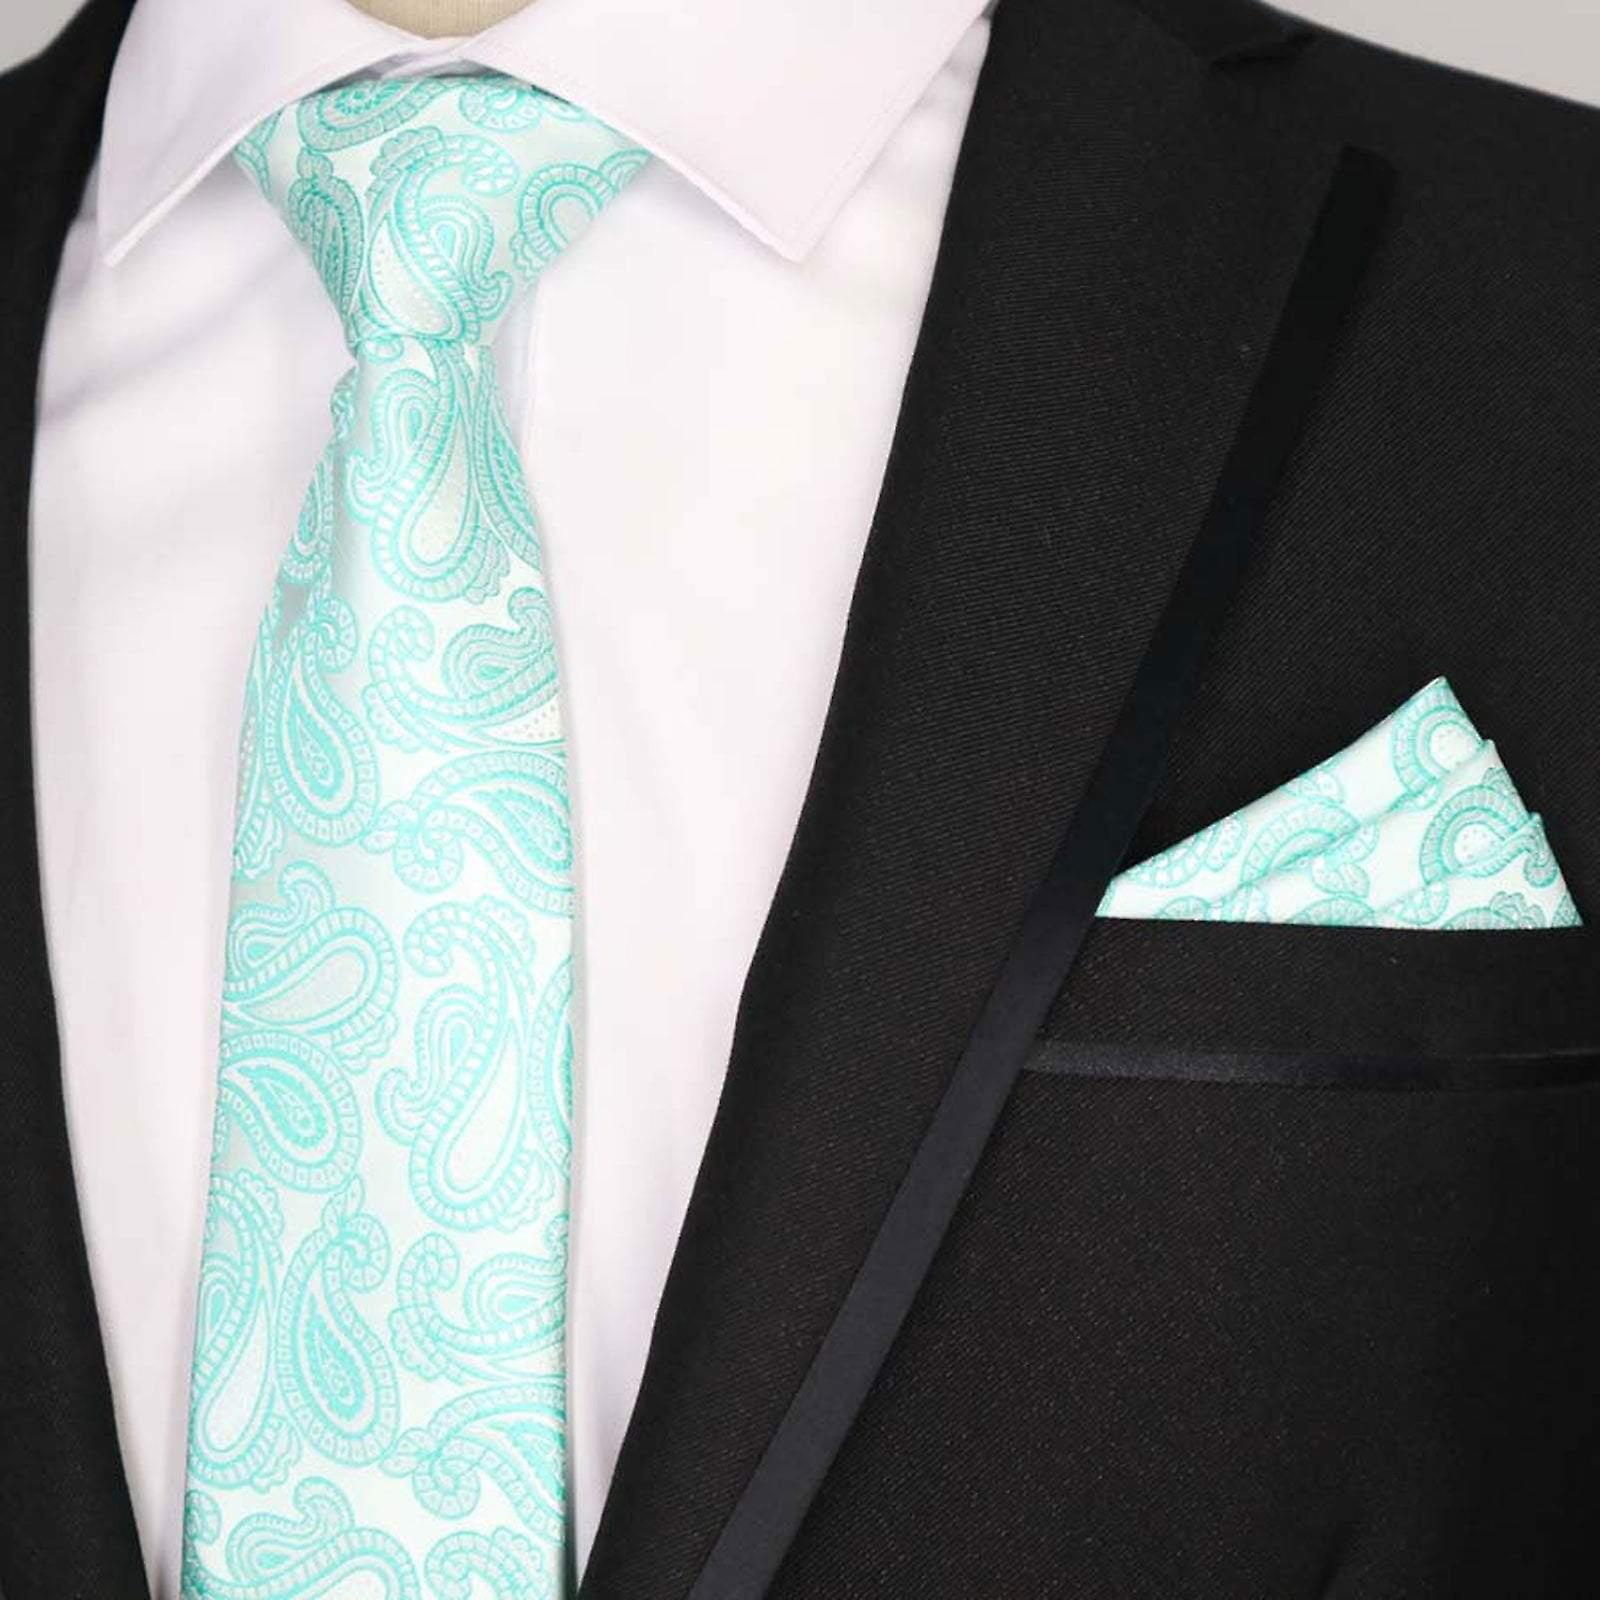 Turquoise paisley wedding necktie & pocket square set